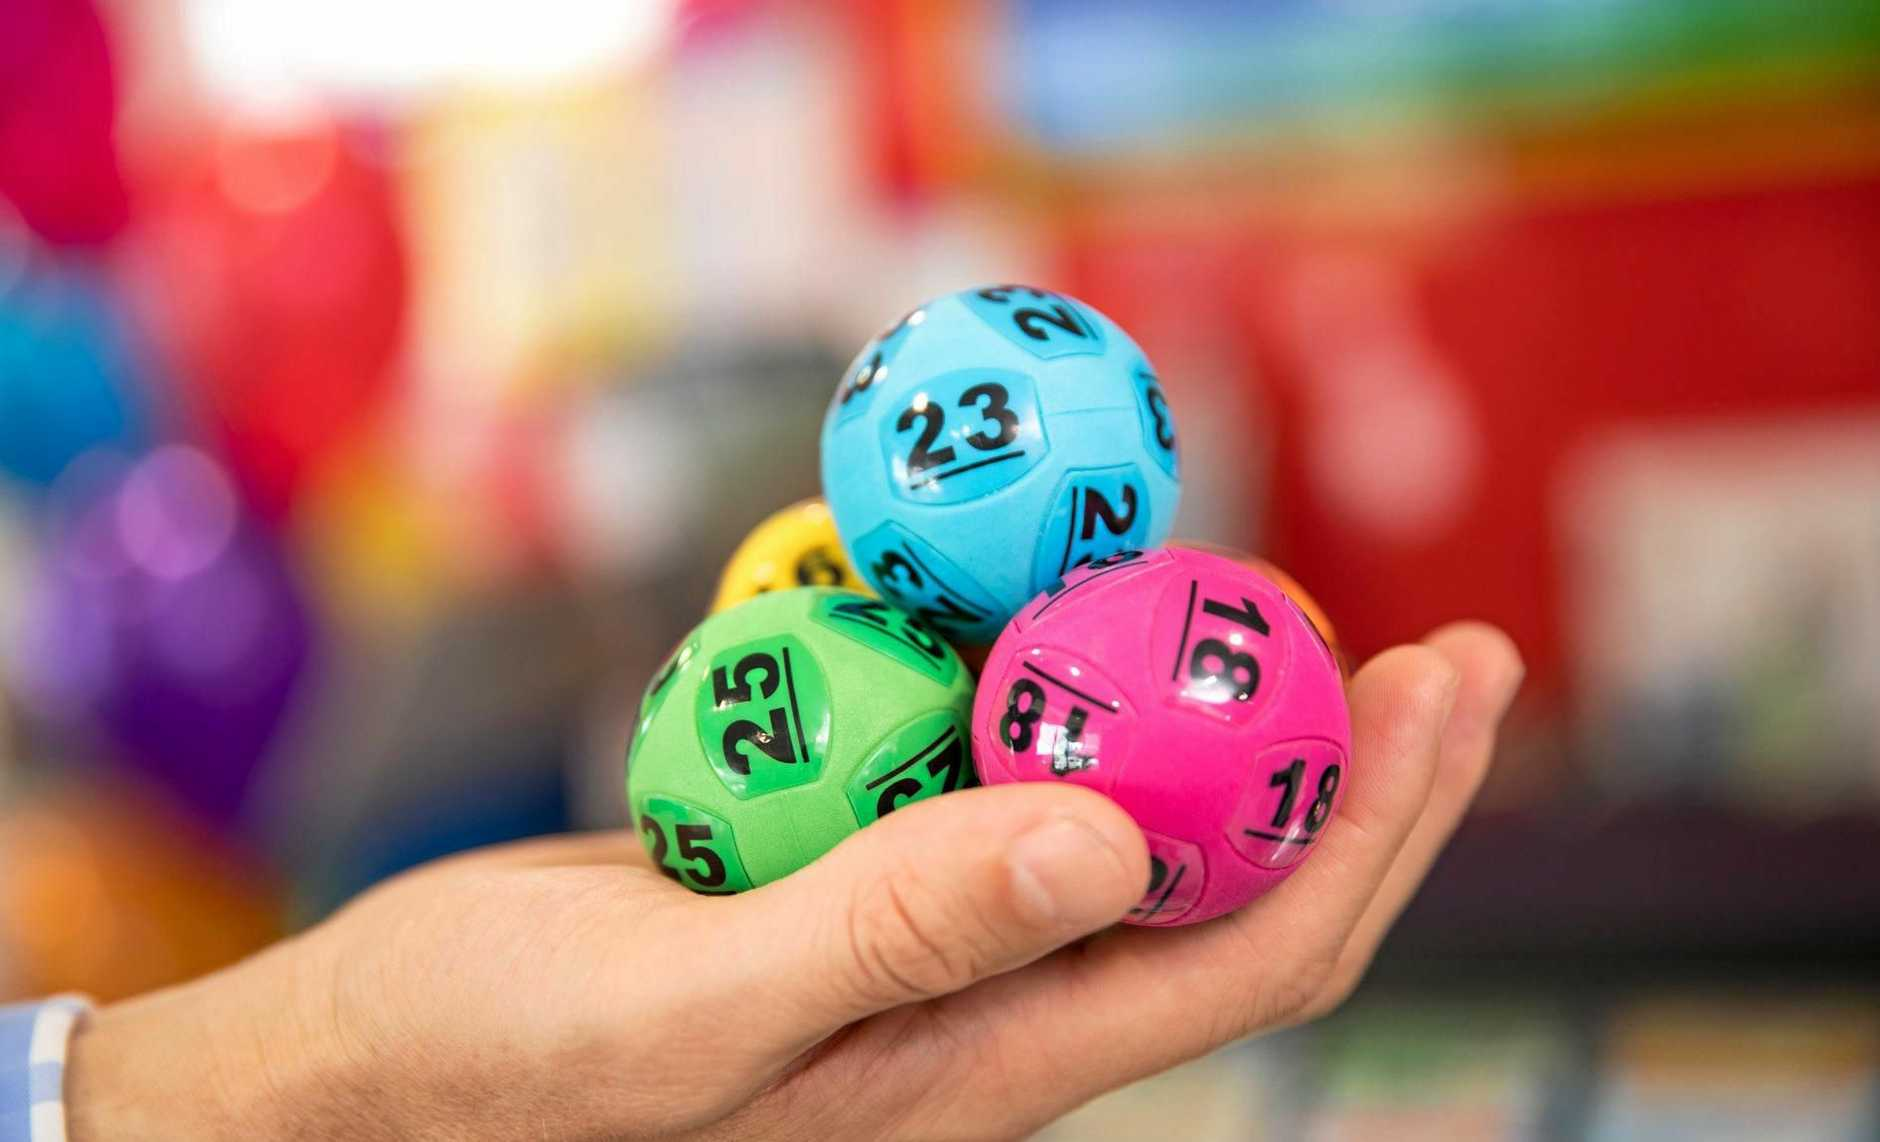 A Cooroy man and his two children will share in more than $600,000 from the division one prize.